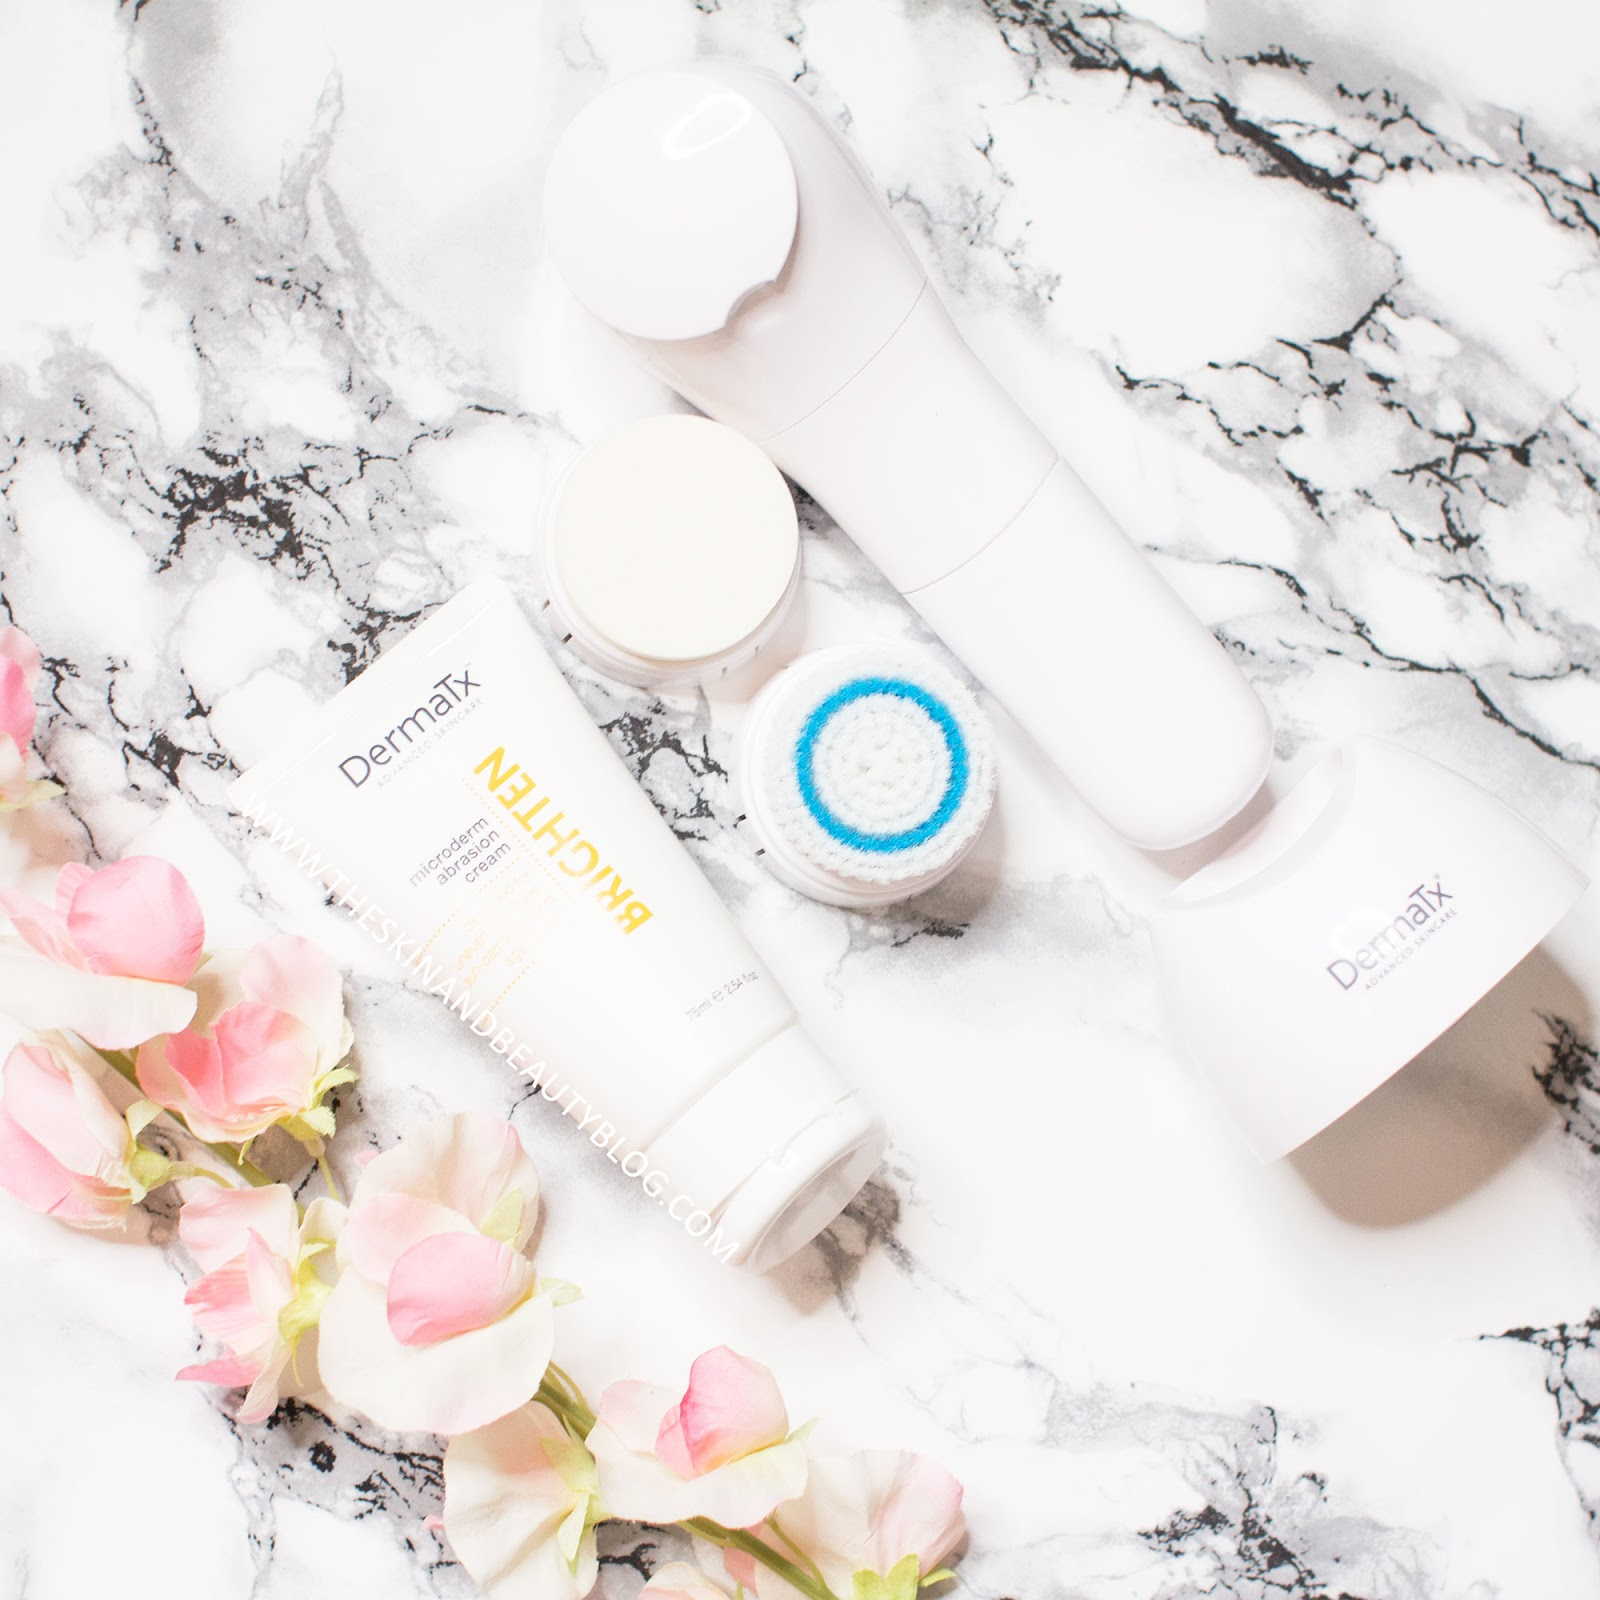 DermaTx Microdermabrasion Brighten System Review